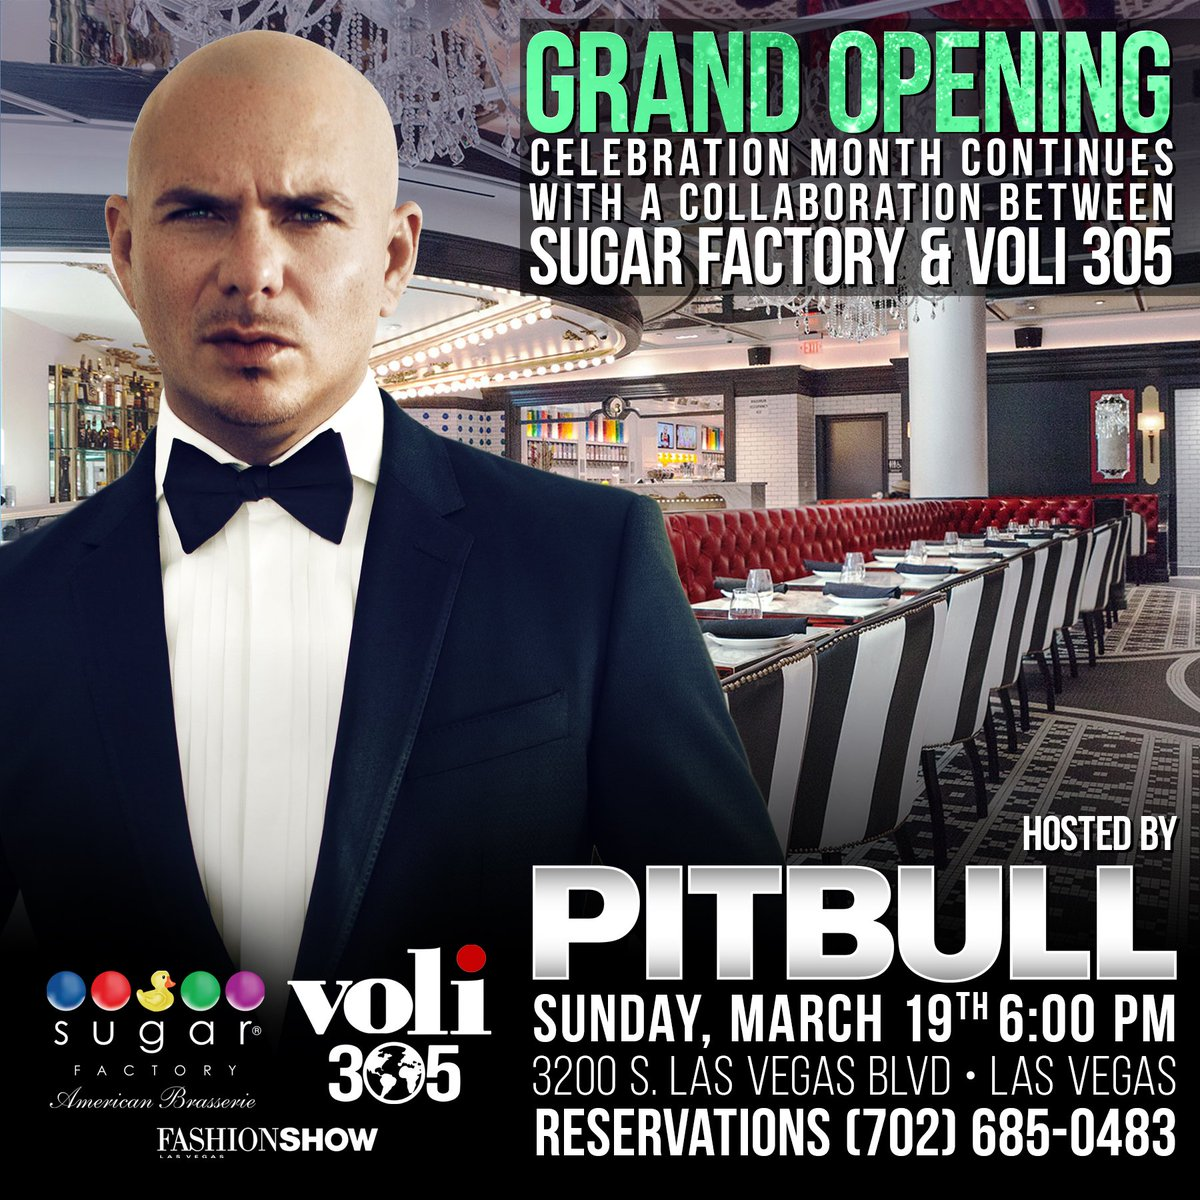 Join the grand opening party in Vegas with @SugarFactory and @Voli305V...